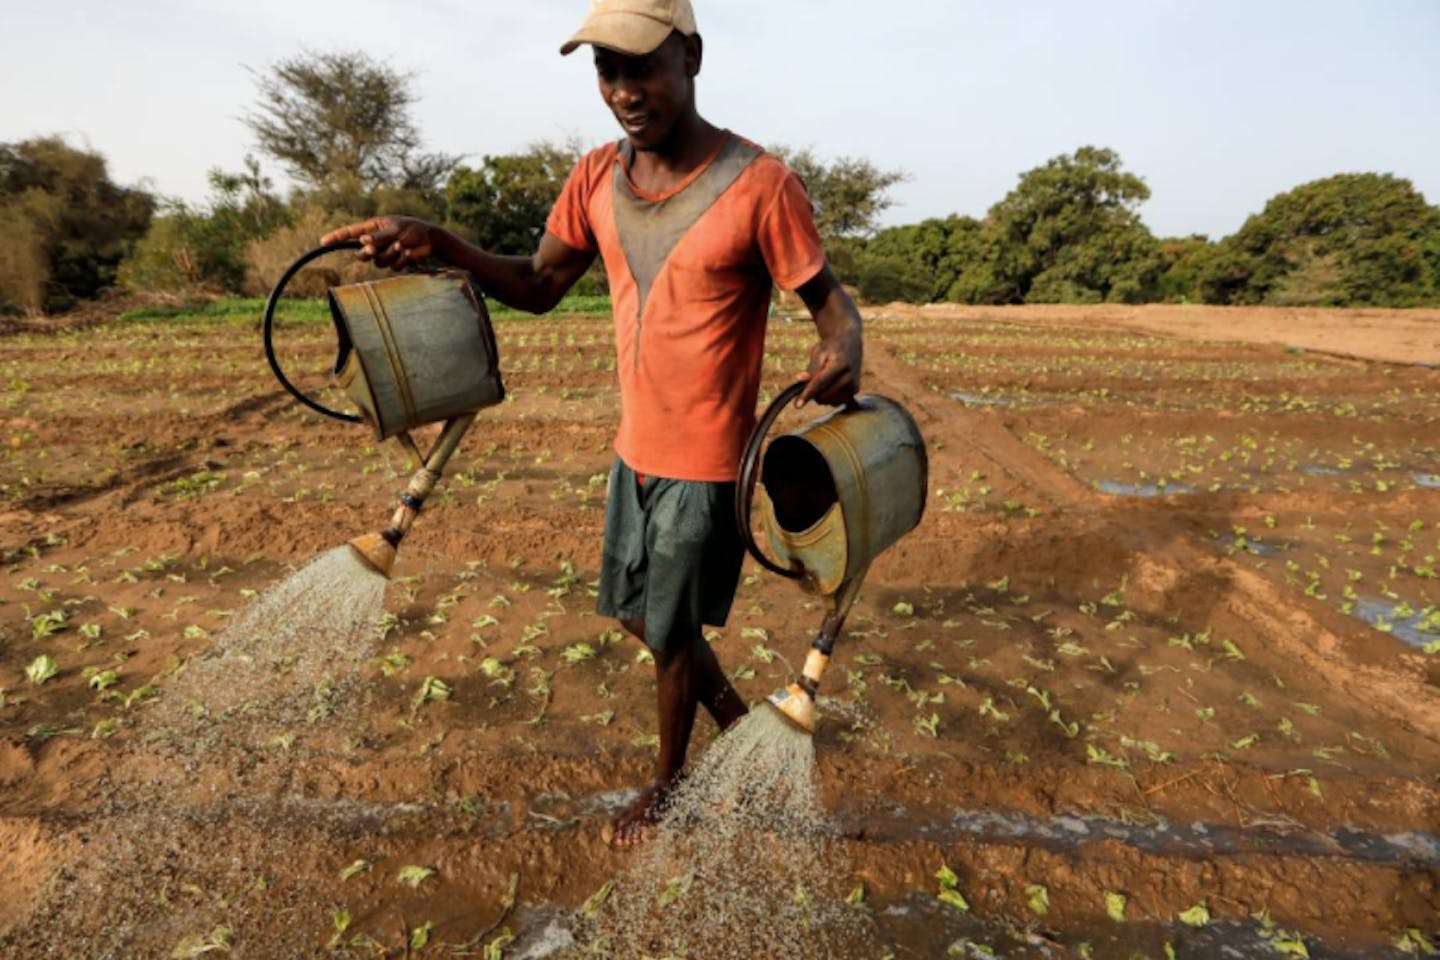 A farm worker manually irrigates a salad field, amid the outbreak of the coronavirus disease in Thies, Senegal.